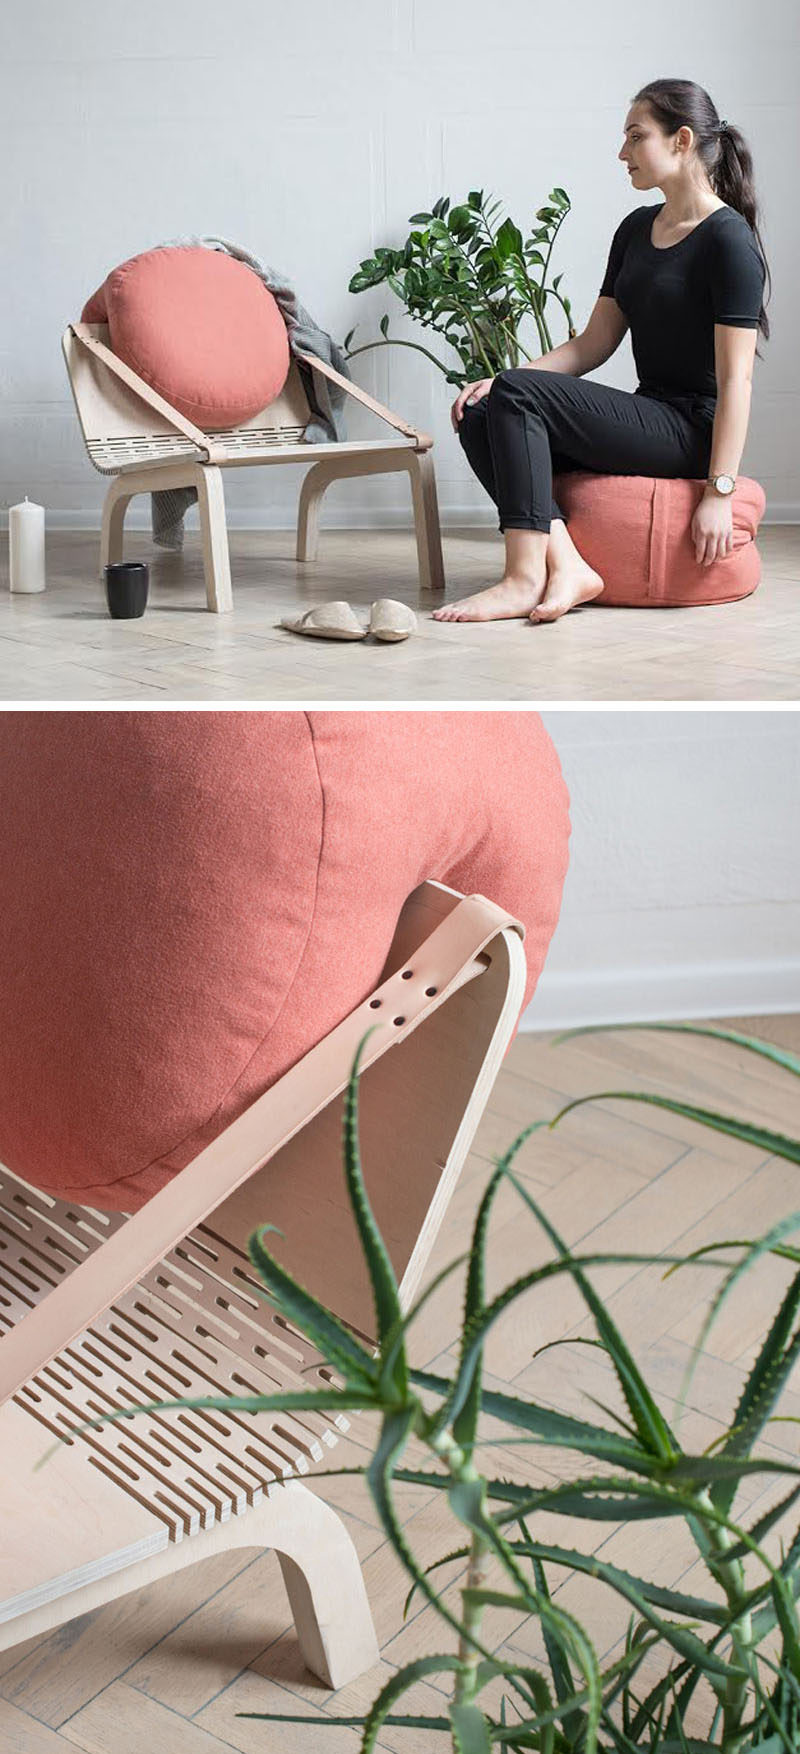 Agnieszka Kowal has designed 'Dango', a modern plywood armchair that has cushions that can be removed and used as poufs.